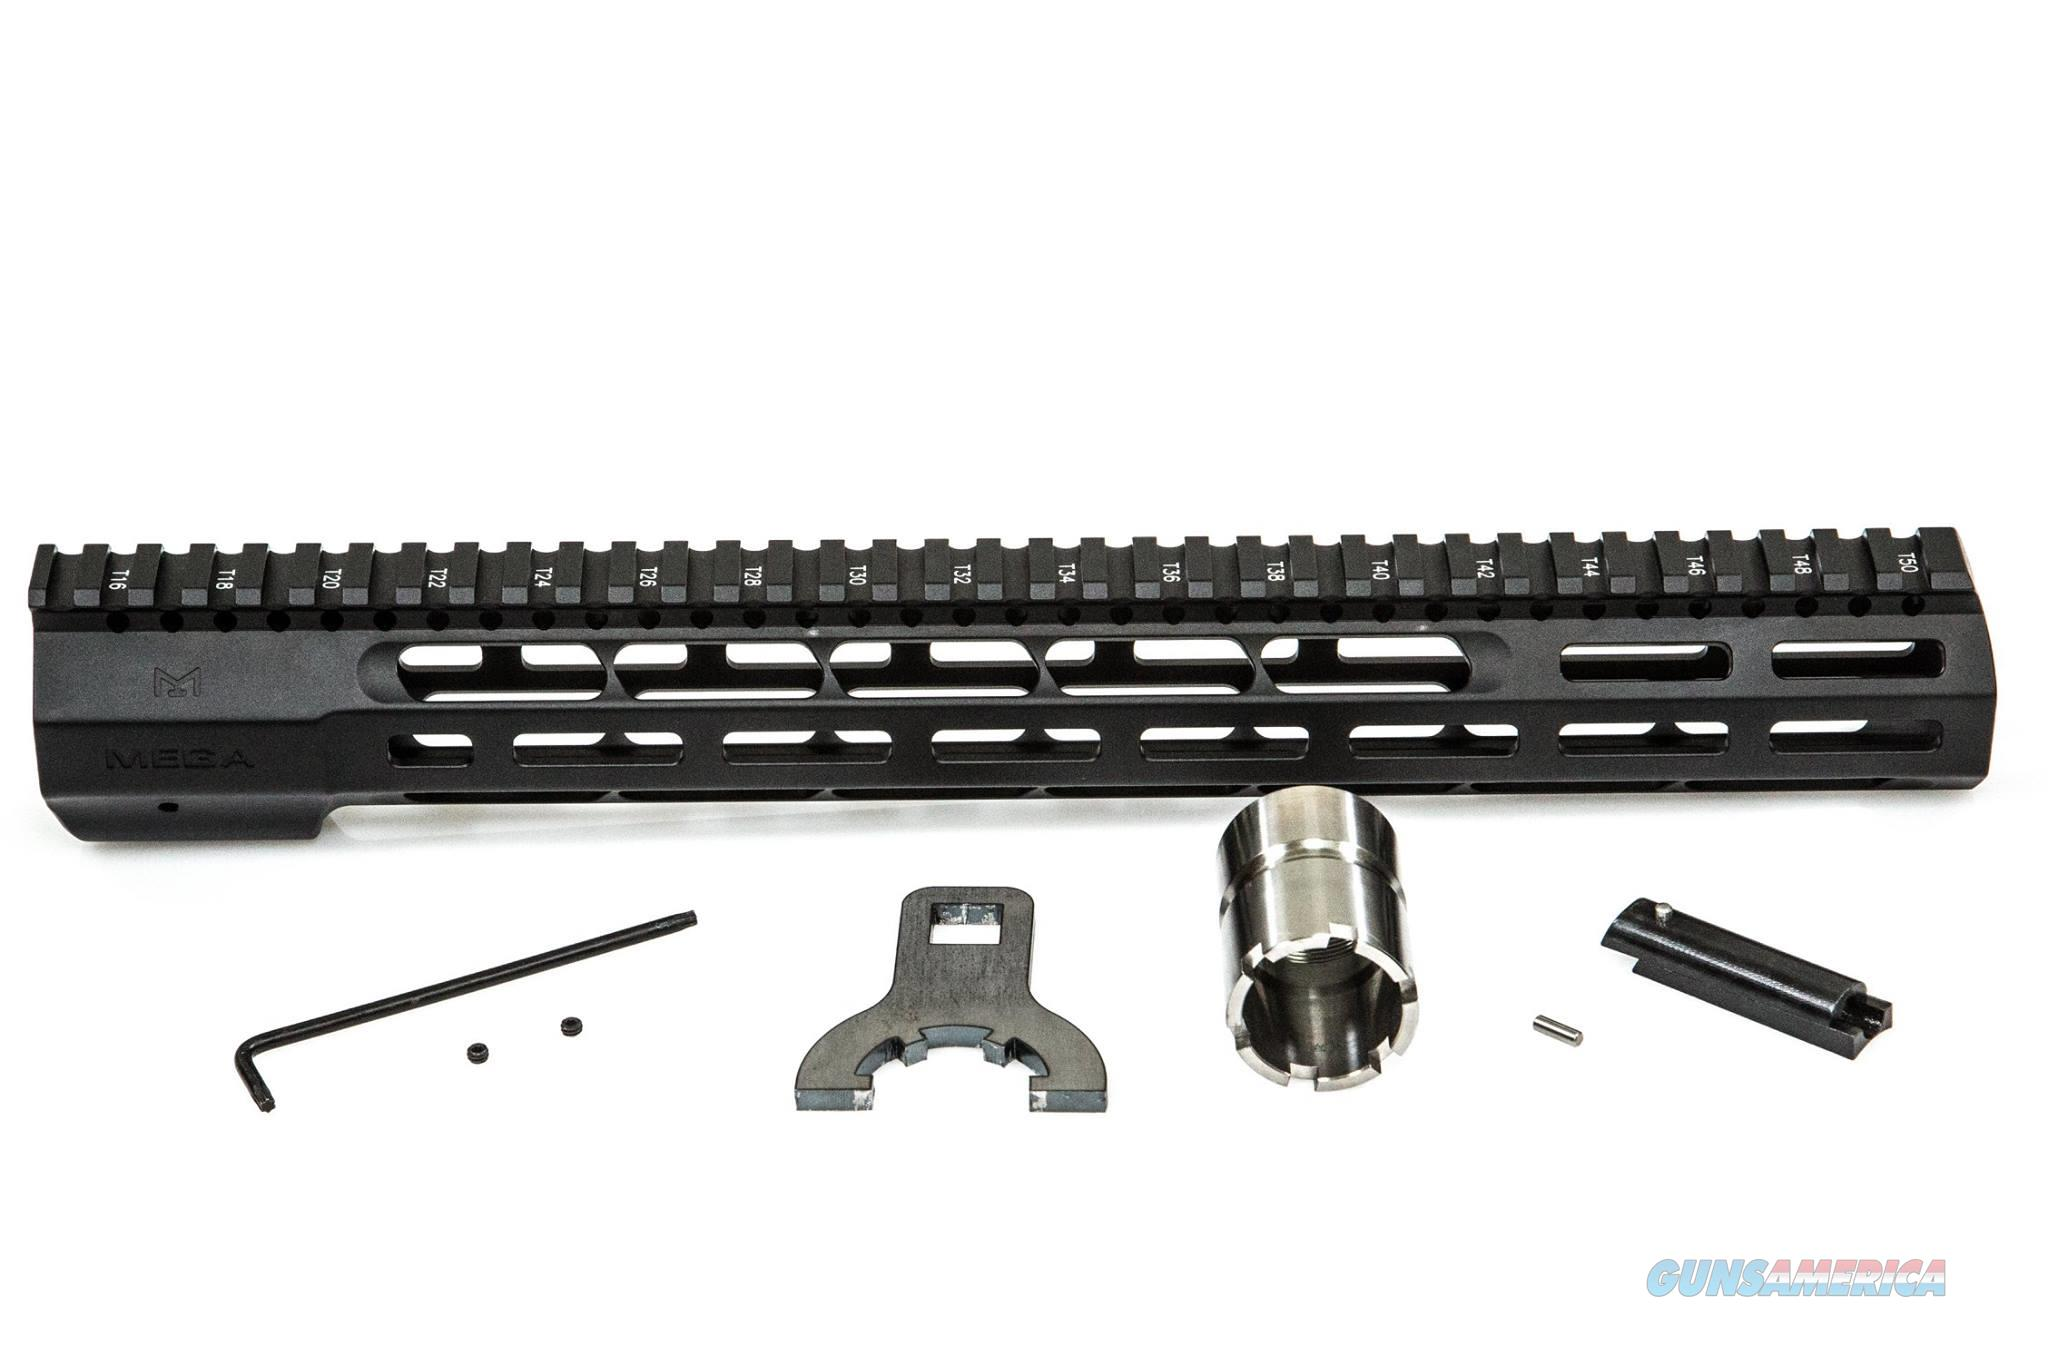 "Mega Arms AR15 Wedge Lock Carbine Length (7"") M-LOK Hand Guard - 25% off MSRP!  Non-Guns > Gun Parts > M16-AR15 > Upper Only"